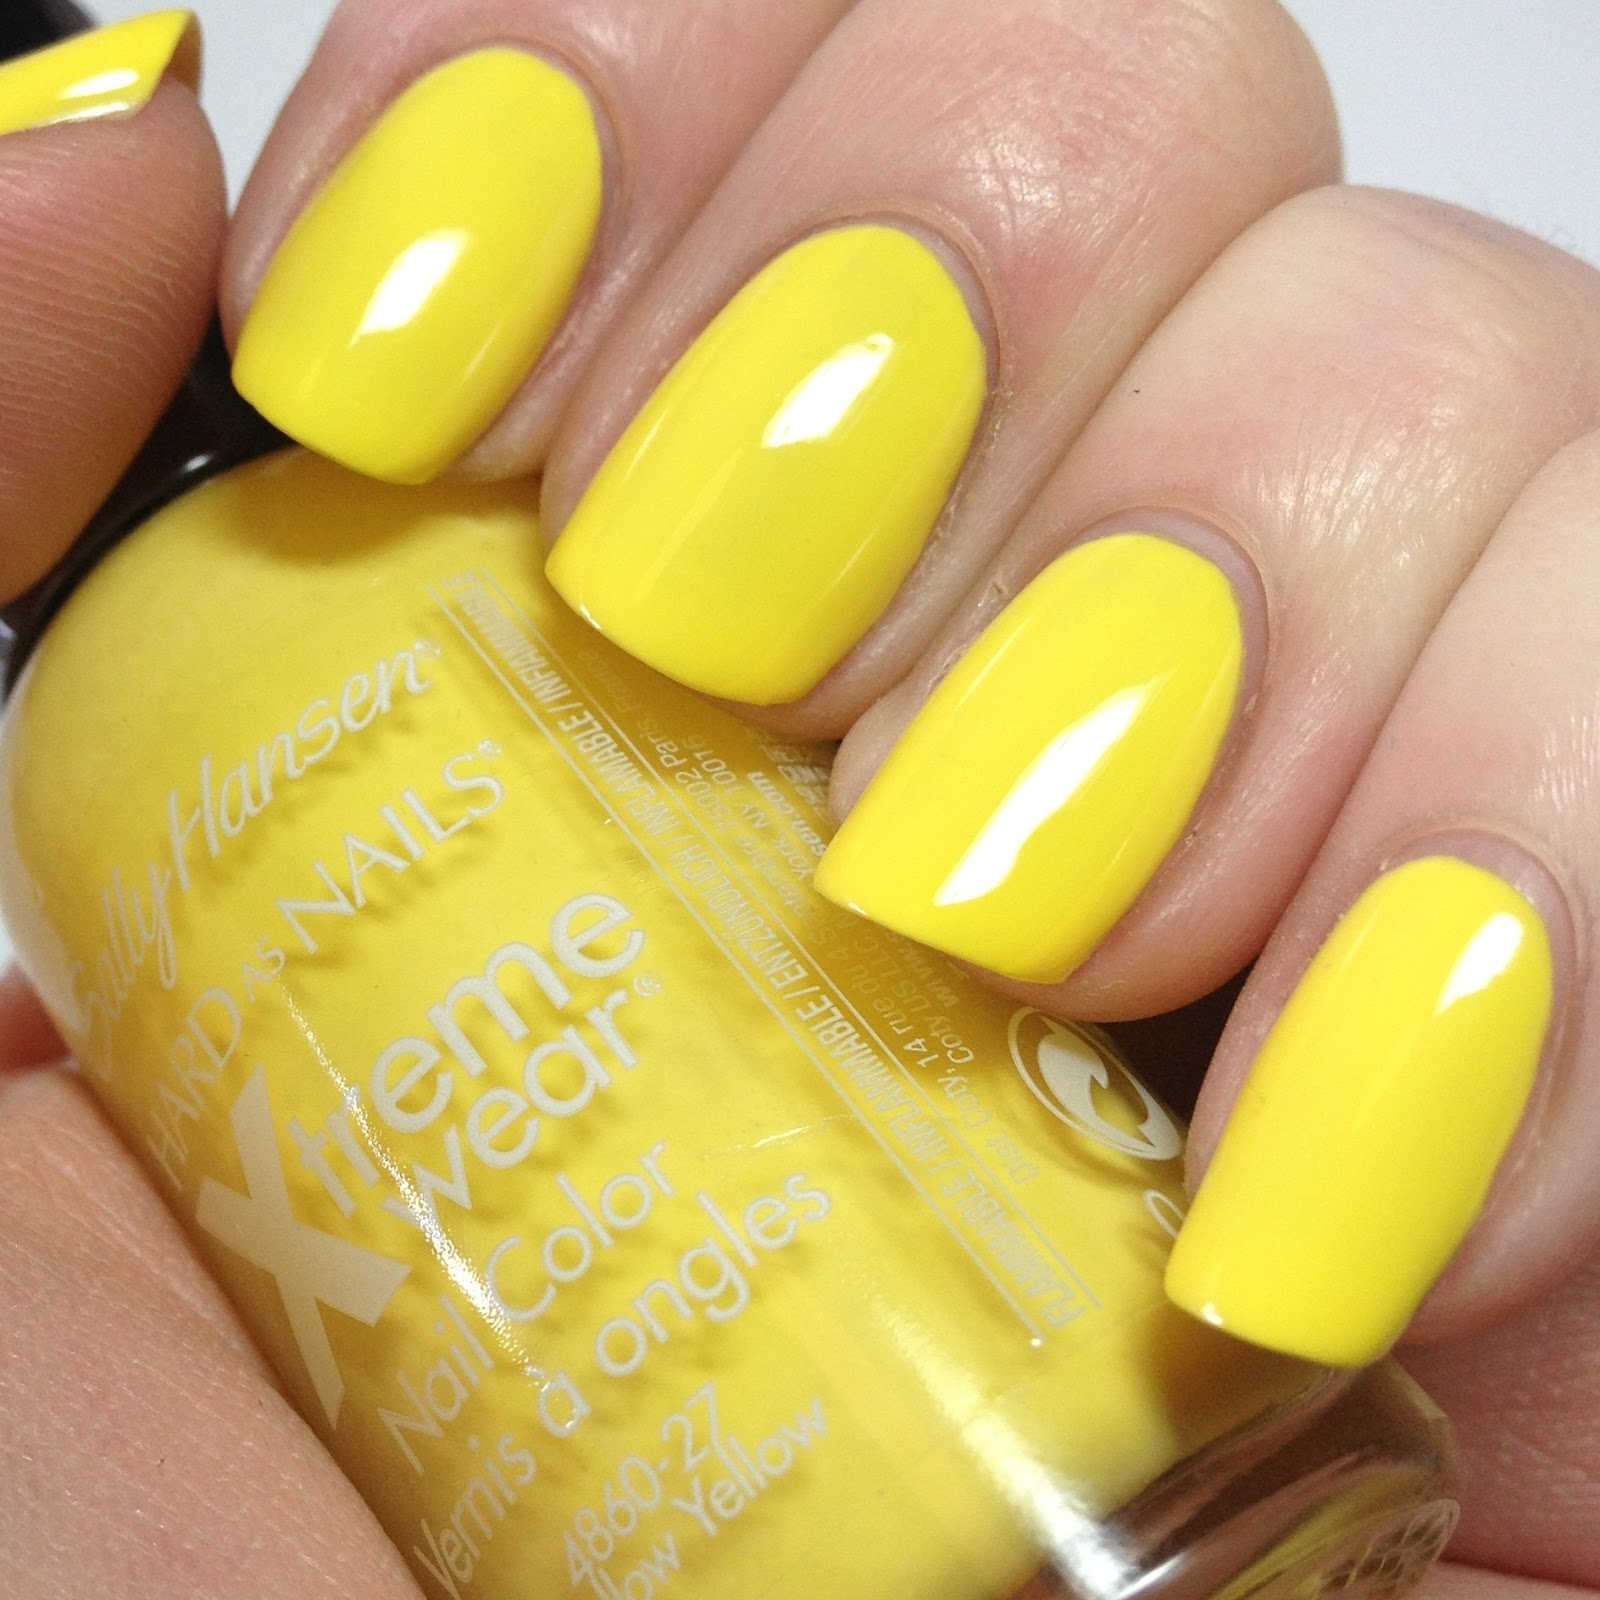 art yellow nails yellow yellow nail paint nail art yellow nails yellow